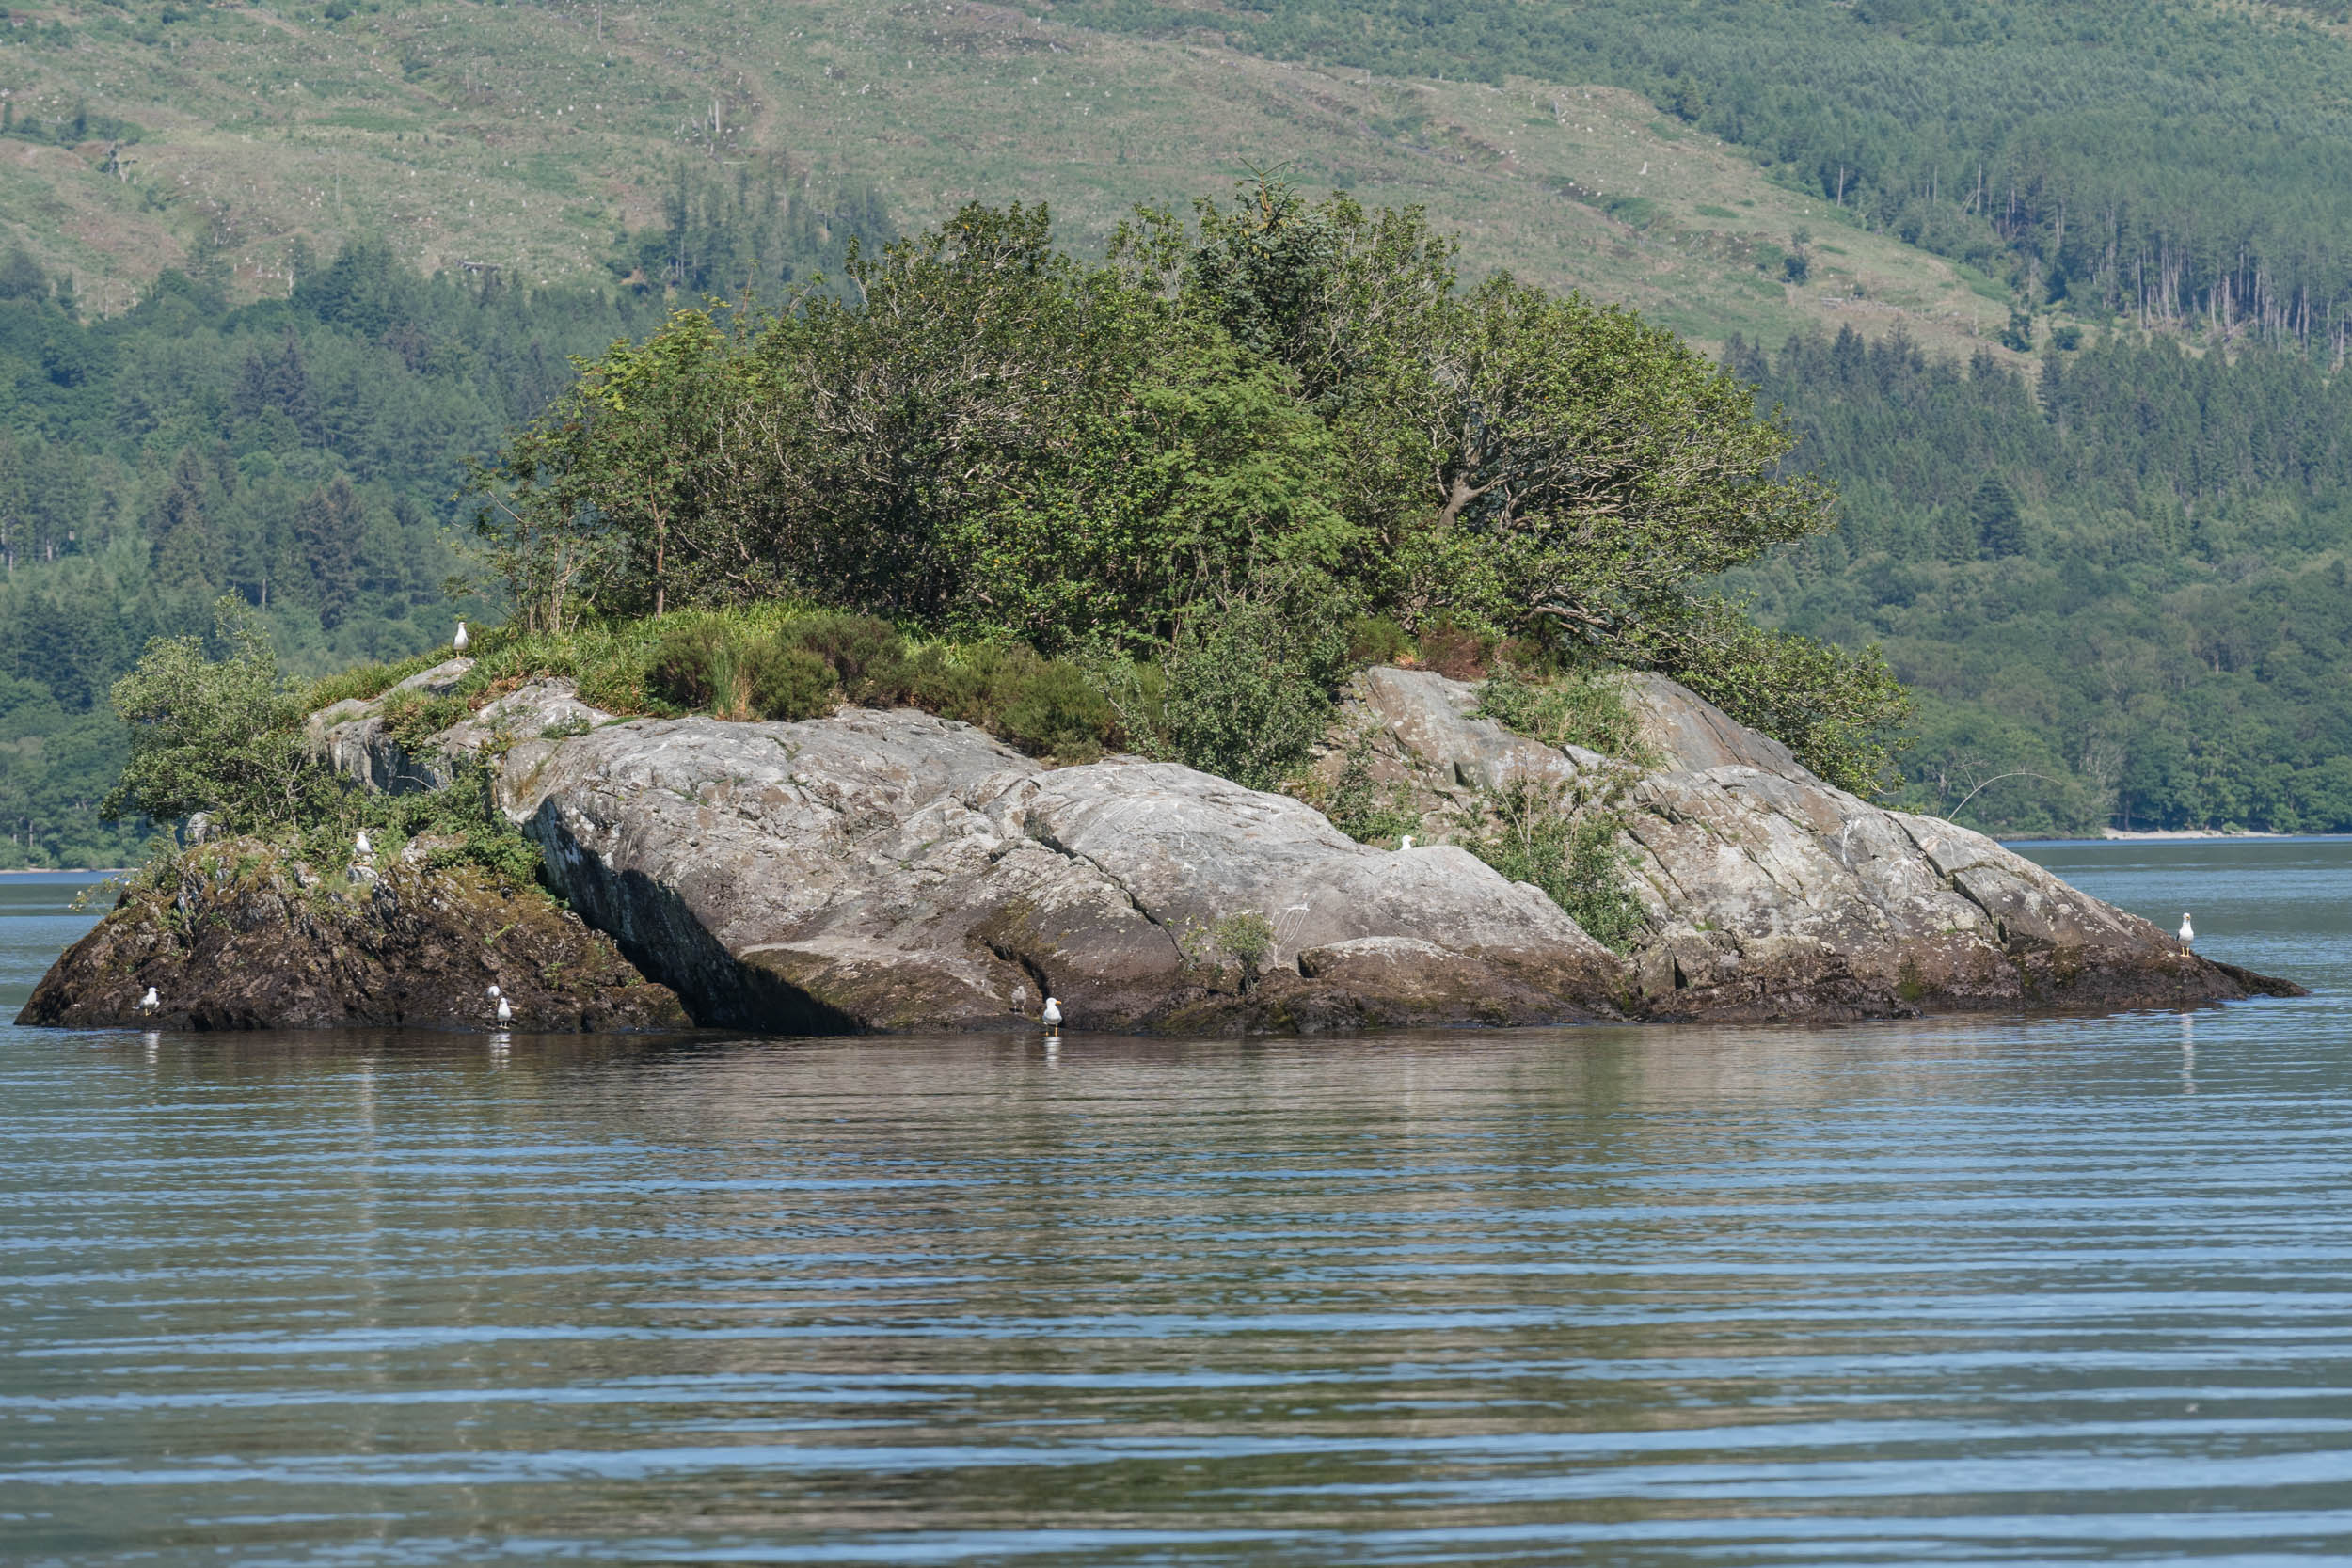 Ross Islands, Loch Lomond